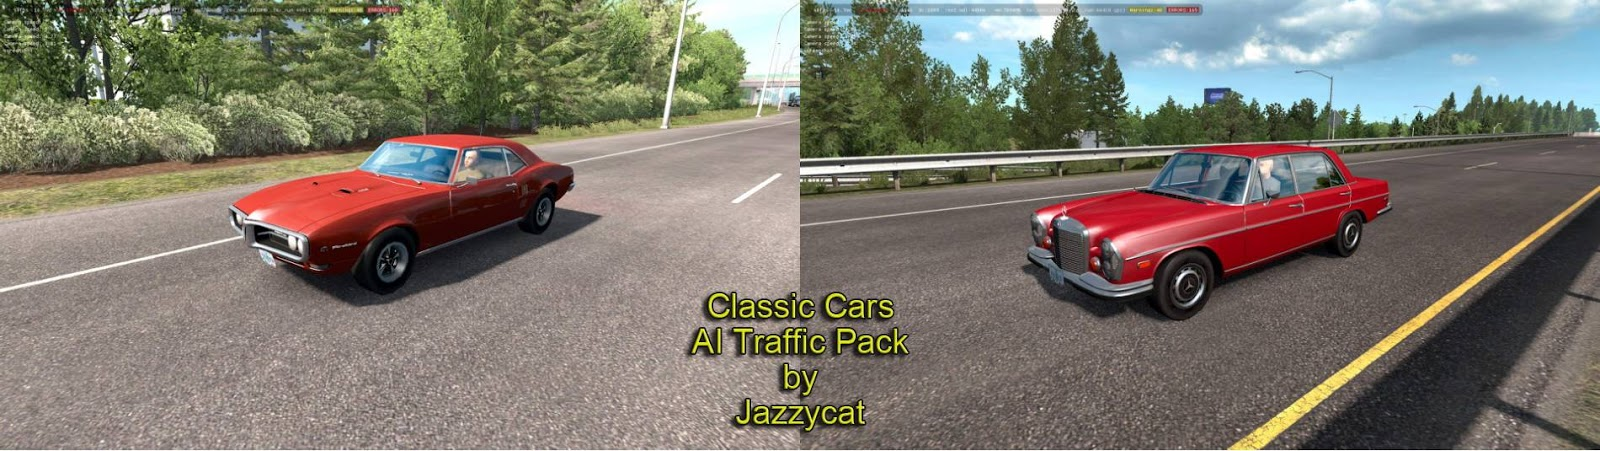 ATS - Classic Cars AI Traffic Pack v3 4 by Jazzycat